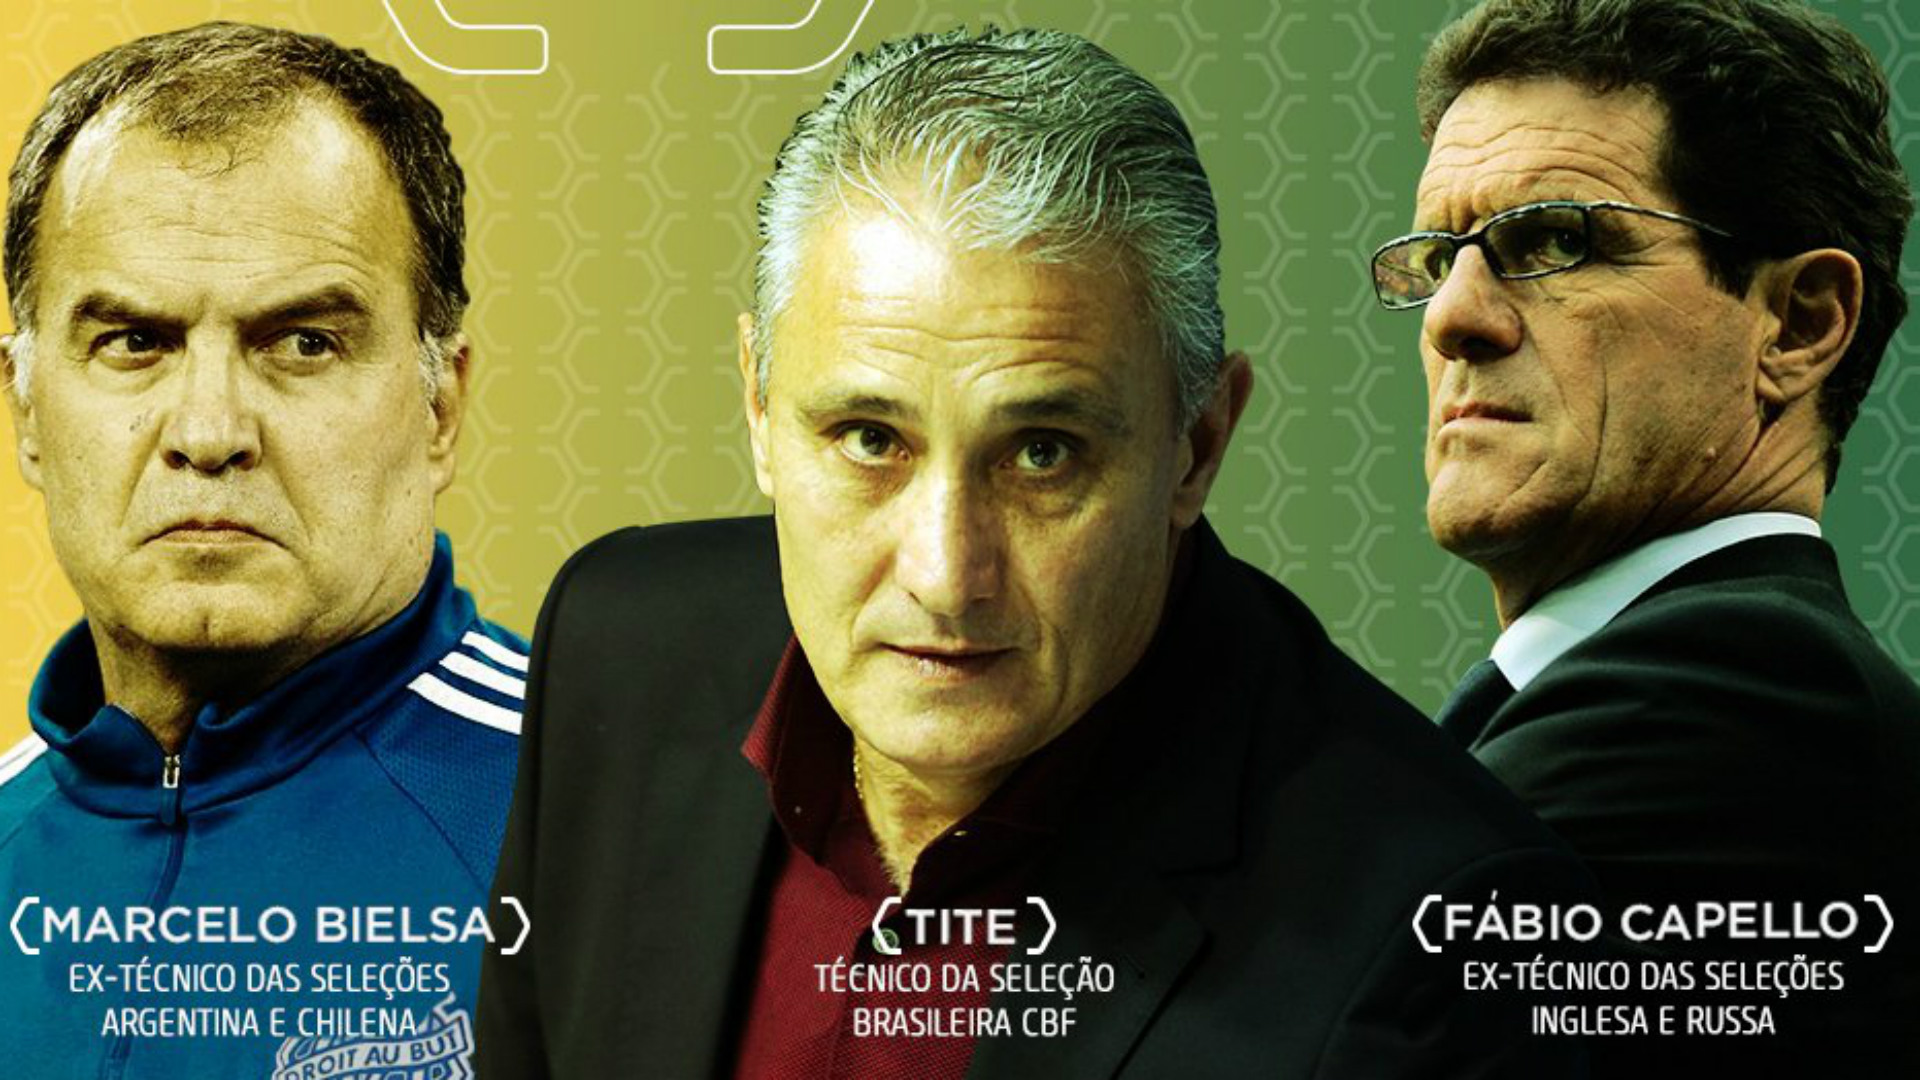 bielsa tite capello